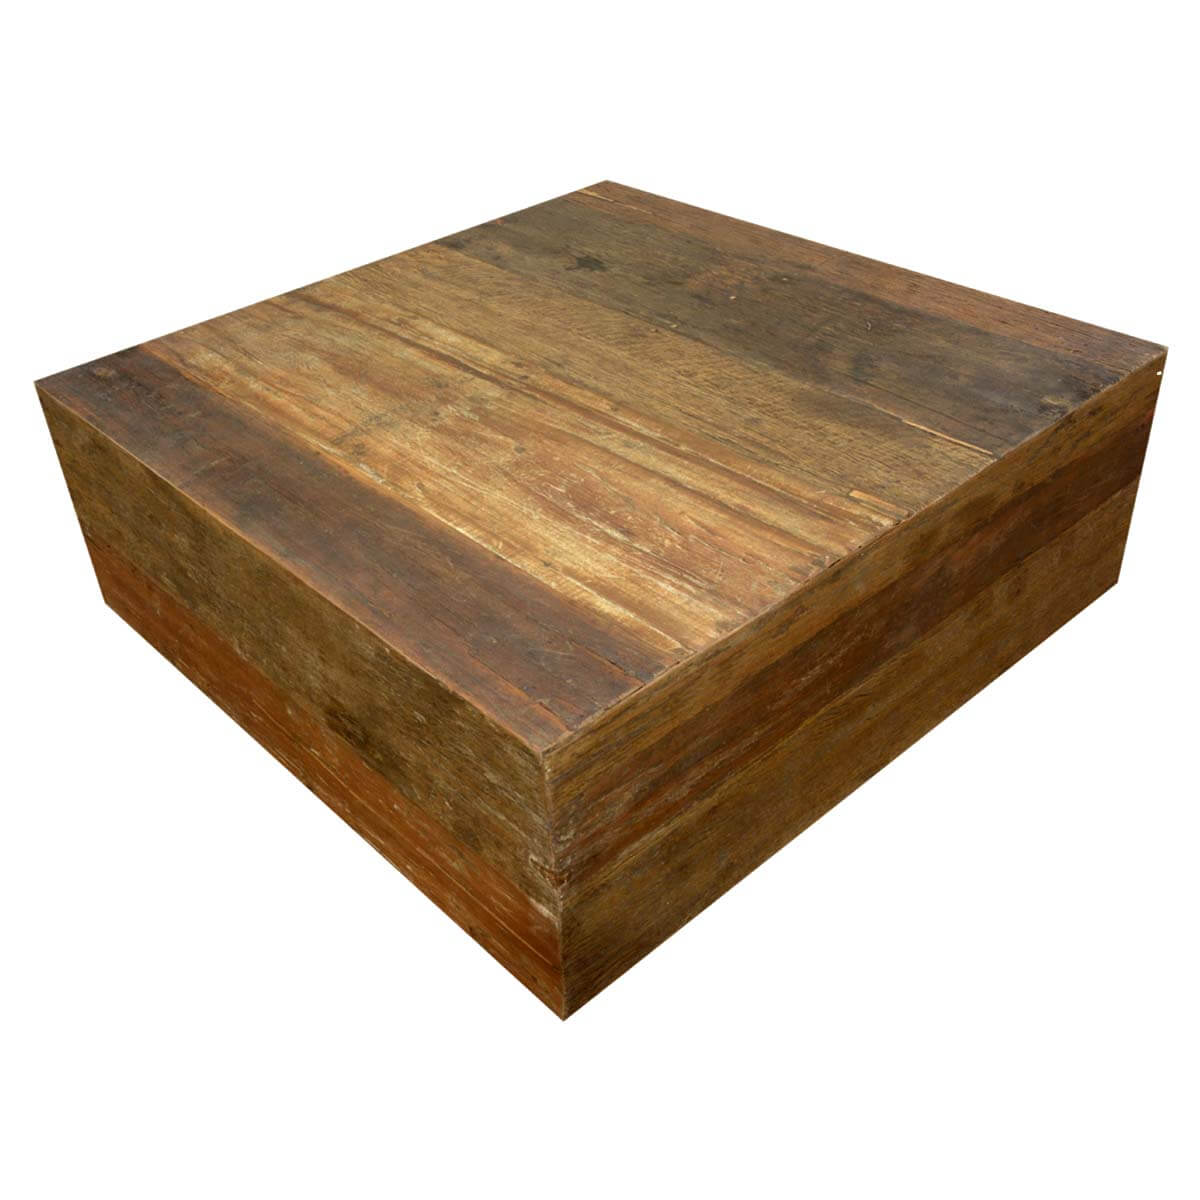 Appalachian rustic old wood square box style coffee table Wood square coffee tables